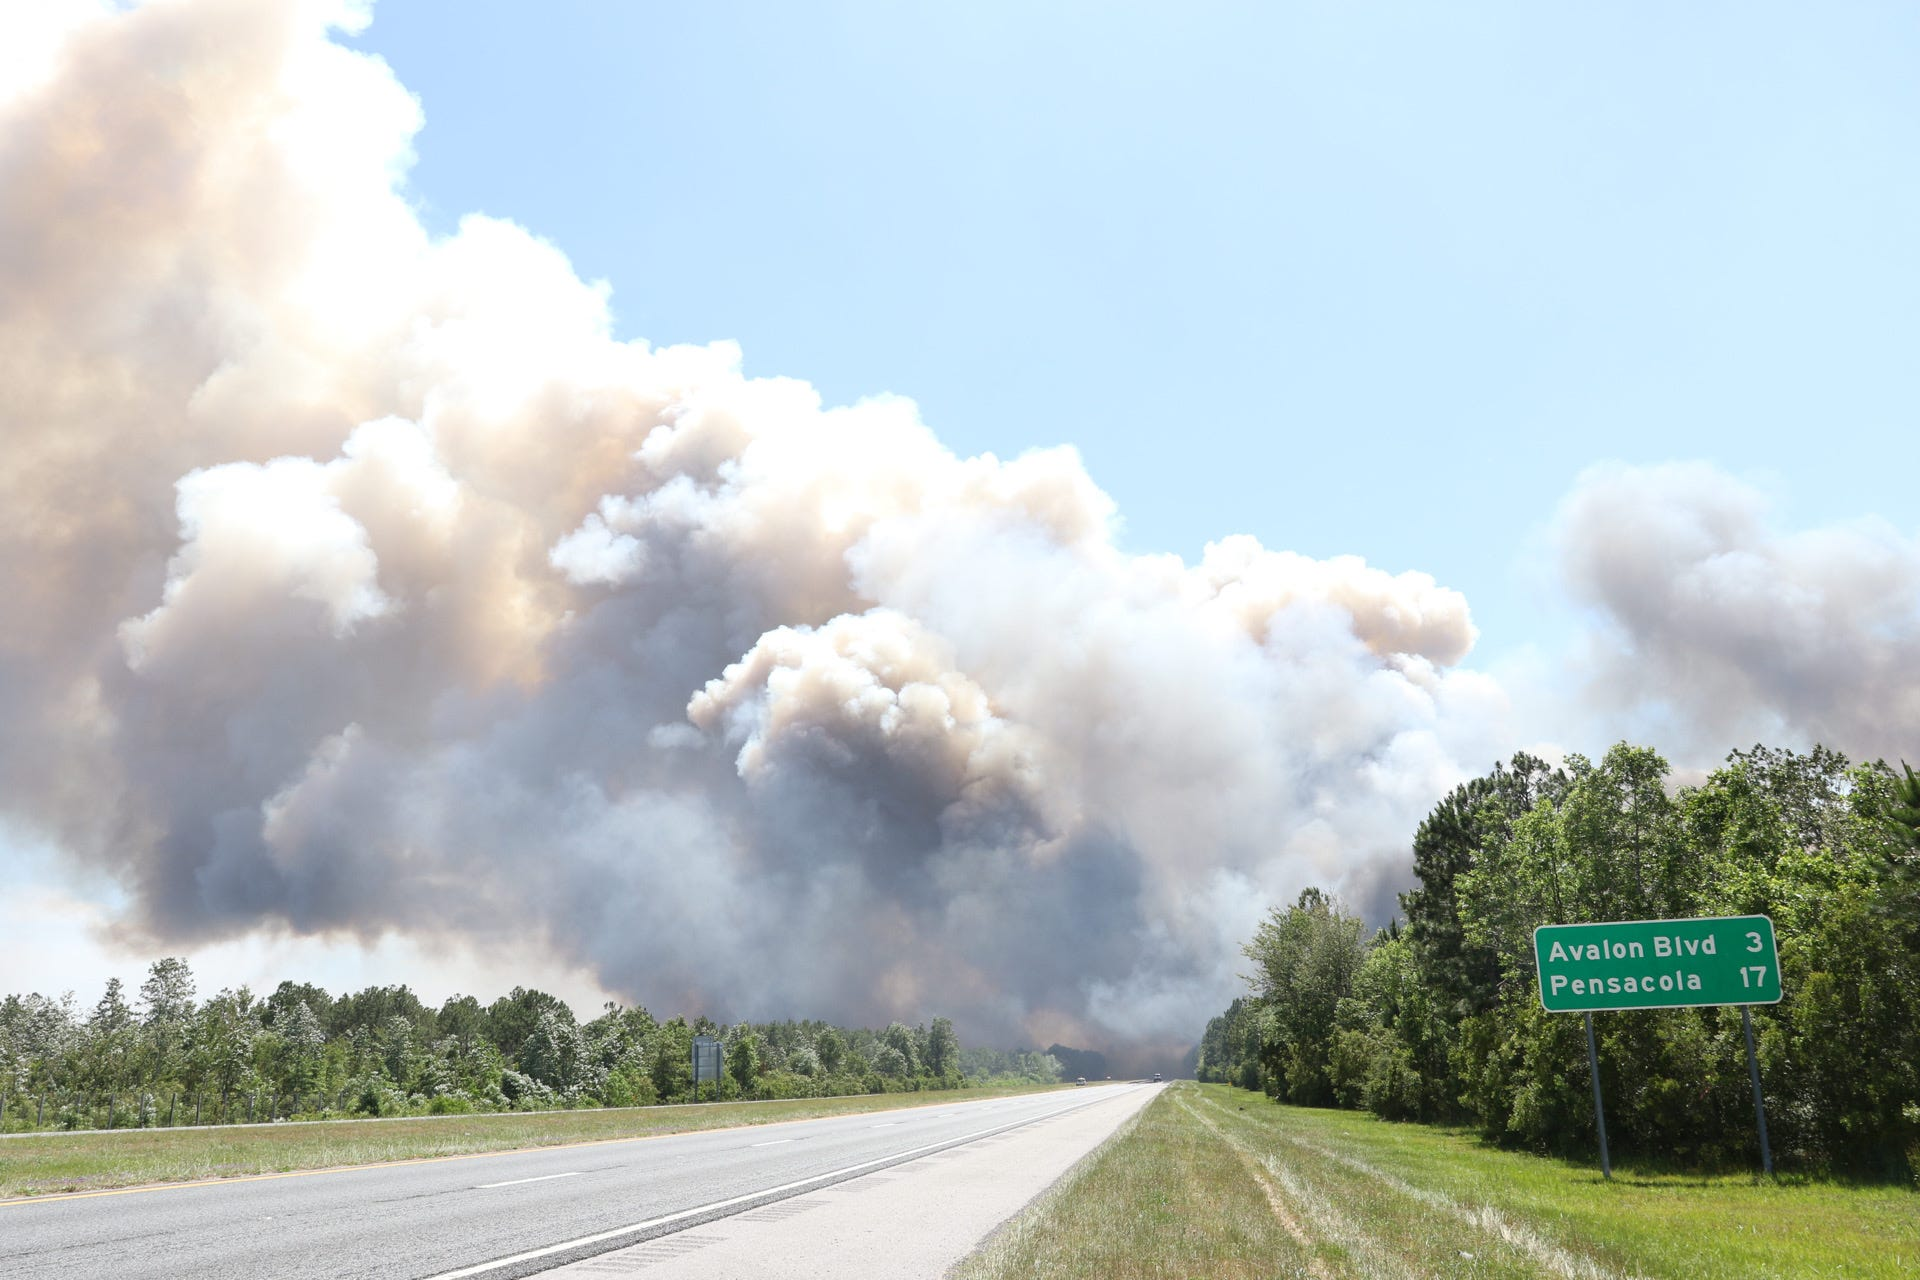 Five Mile Swamp Fire in northwest Florida rages out of control, forcing evacuations and partial closure of Interstate 10